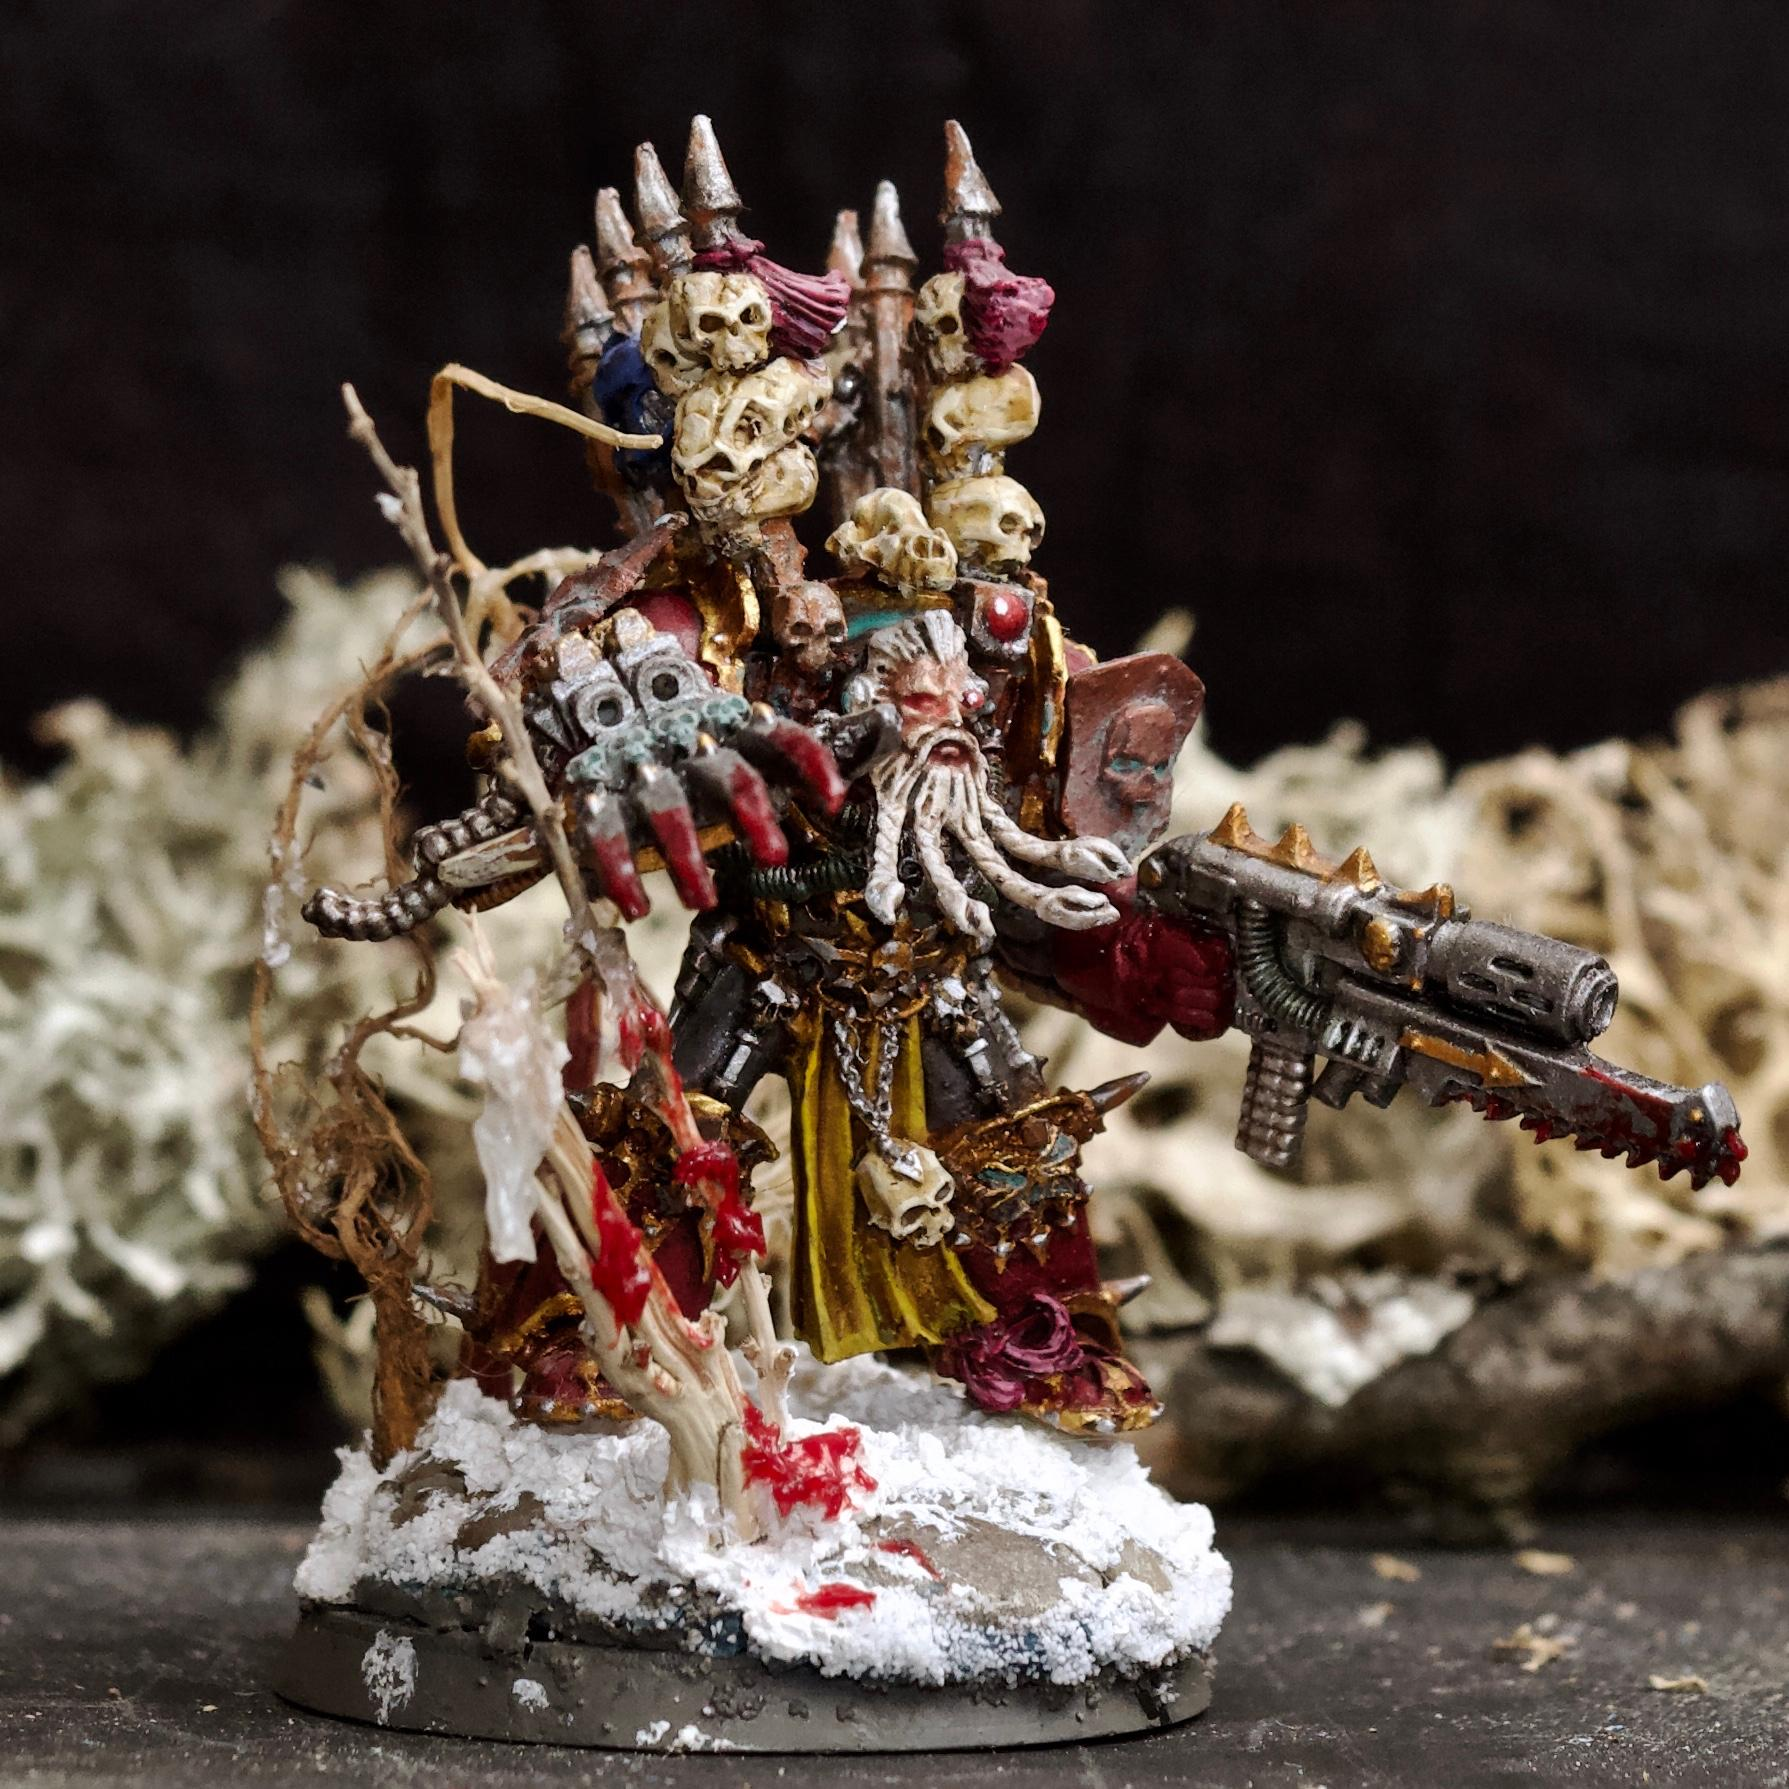 Abaddon The Despoiler, Awesome Photos, Beard, Berserkers, Berzerk, Blood For The Blood God, By Andrey Mishuta, Chaos, Chaos Space Marines, Combiweapon, Conversion, Heretic Astartes, Khorne, Khorne Wolves, Lightning Claw, M.a.k., Out Of Production, Skulls For Skull Throne, Snow, Space Wolves, Terminator Armor, Traitor, Trophy, Warhammer 40,000